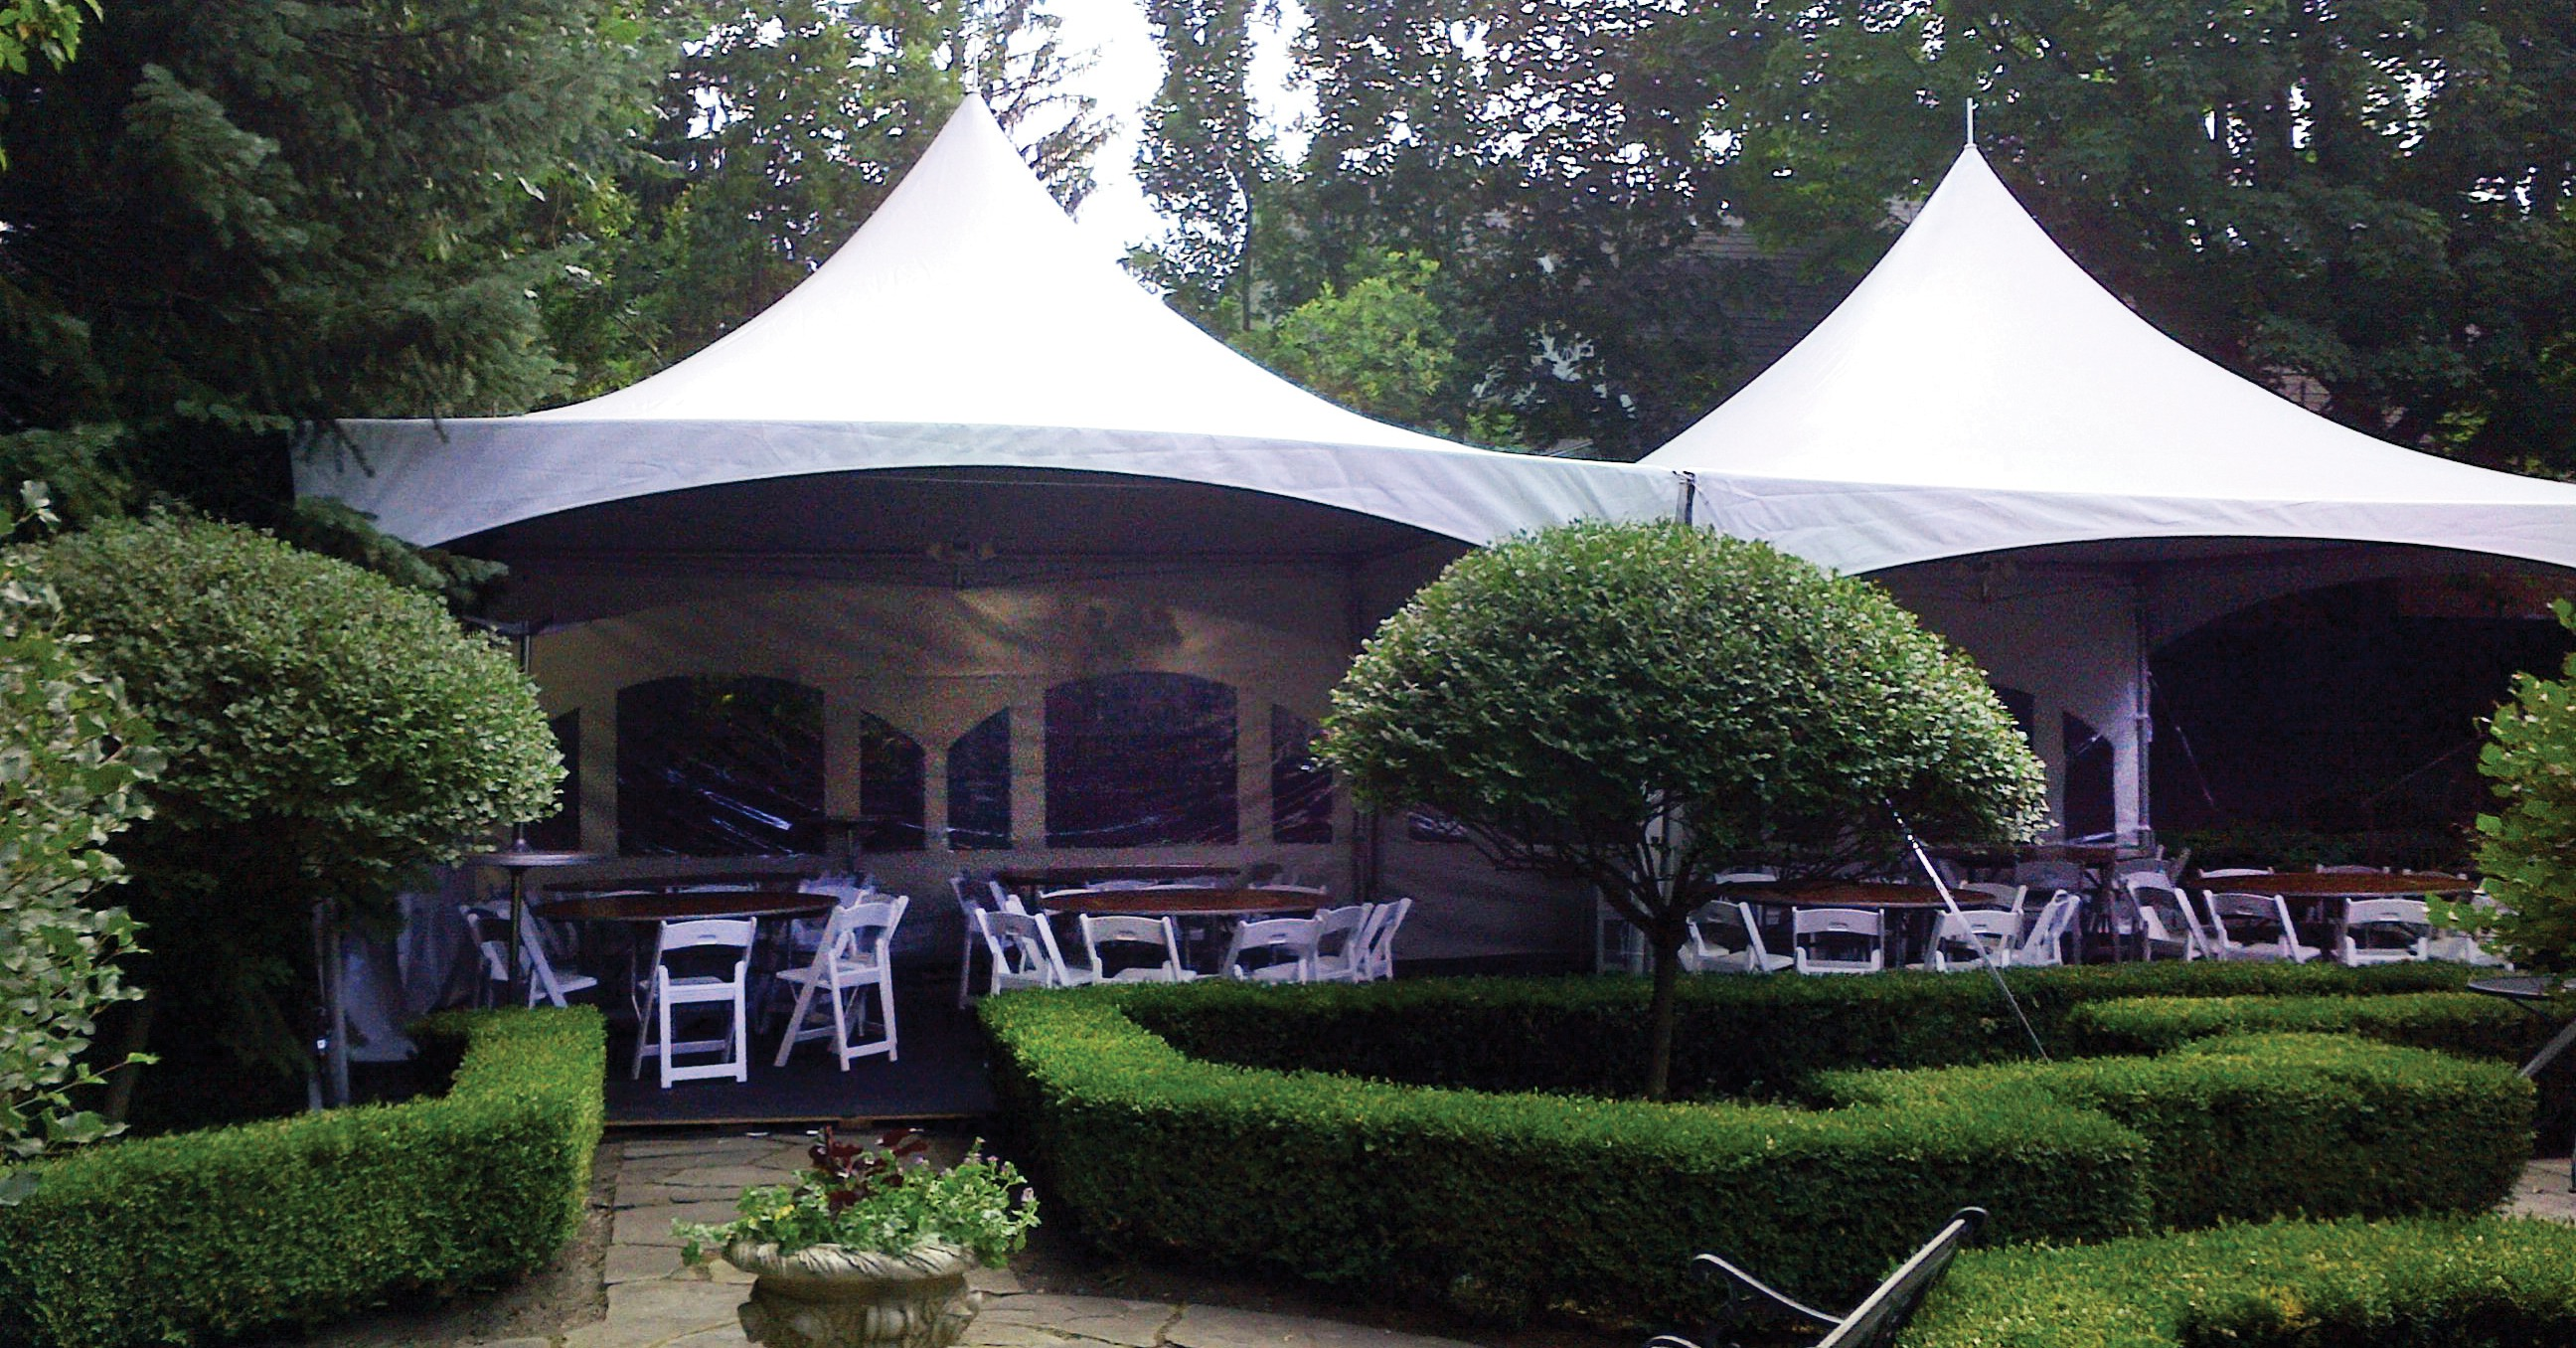 Big Top Tents Ottawa Tent Rental 613 260 5556